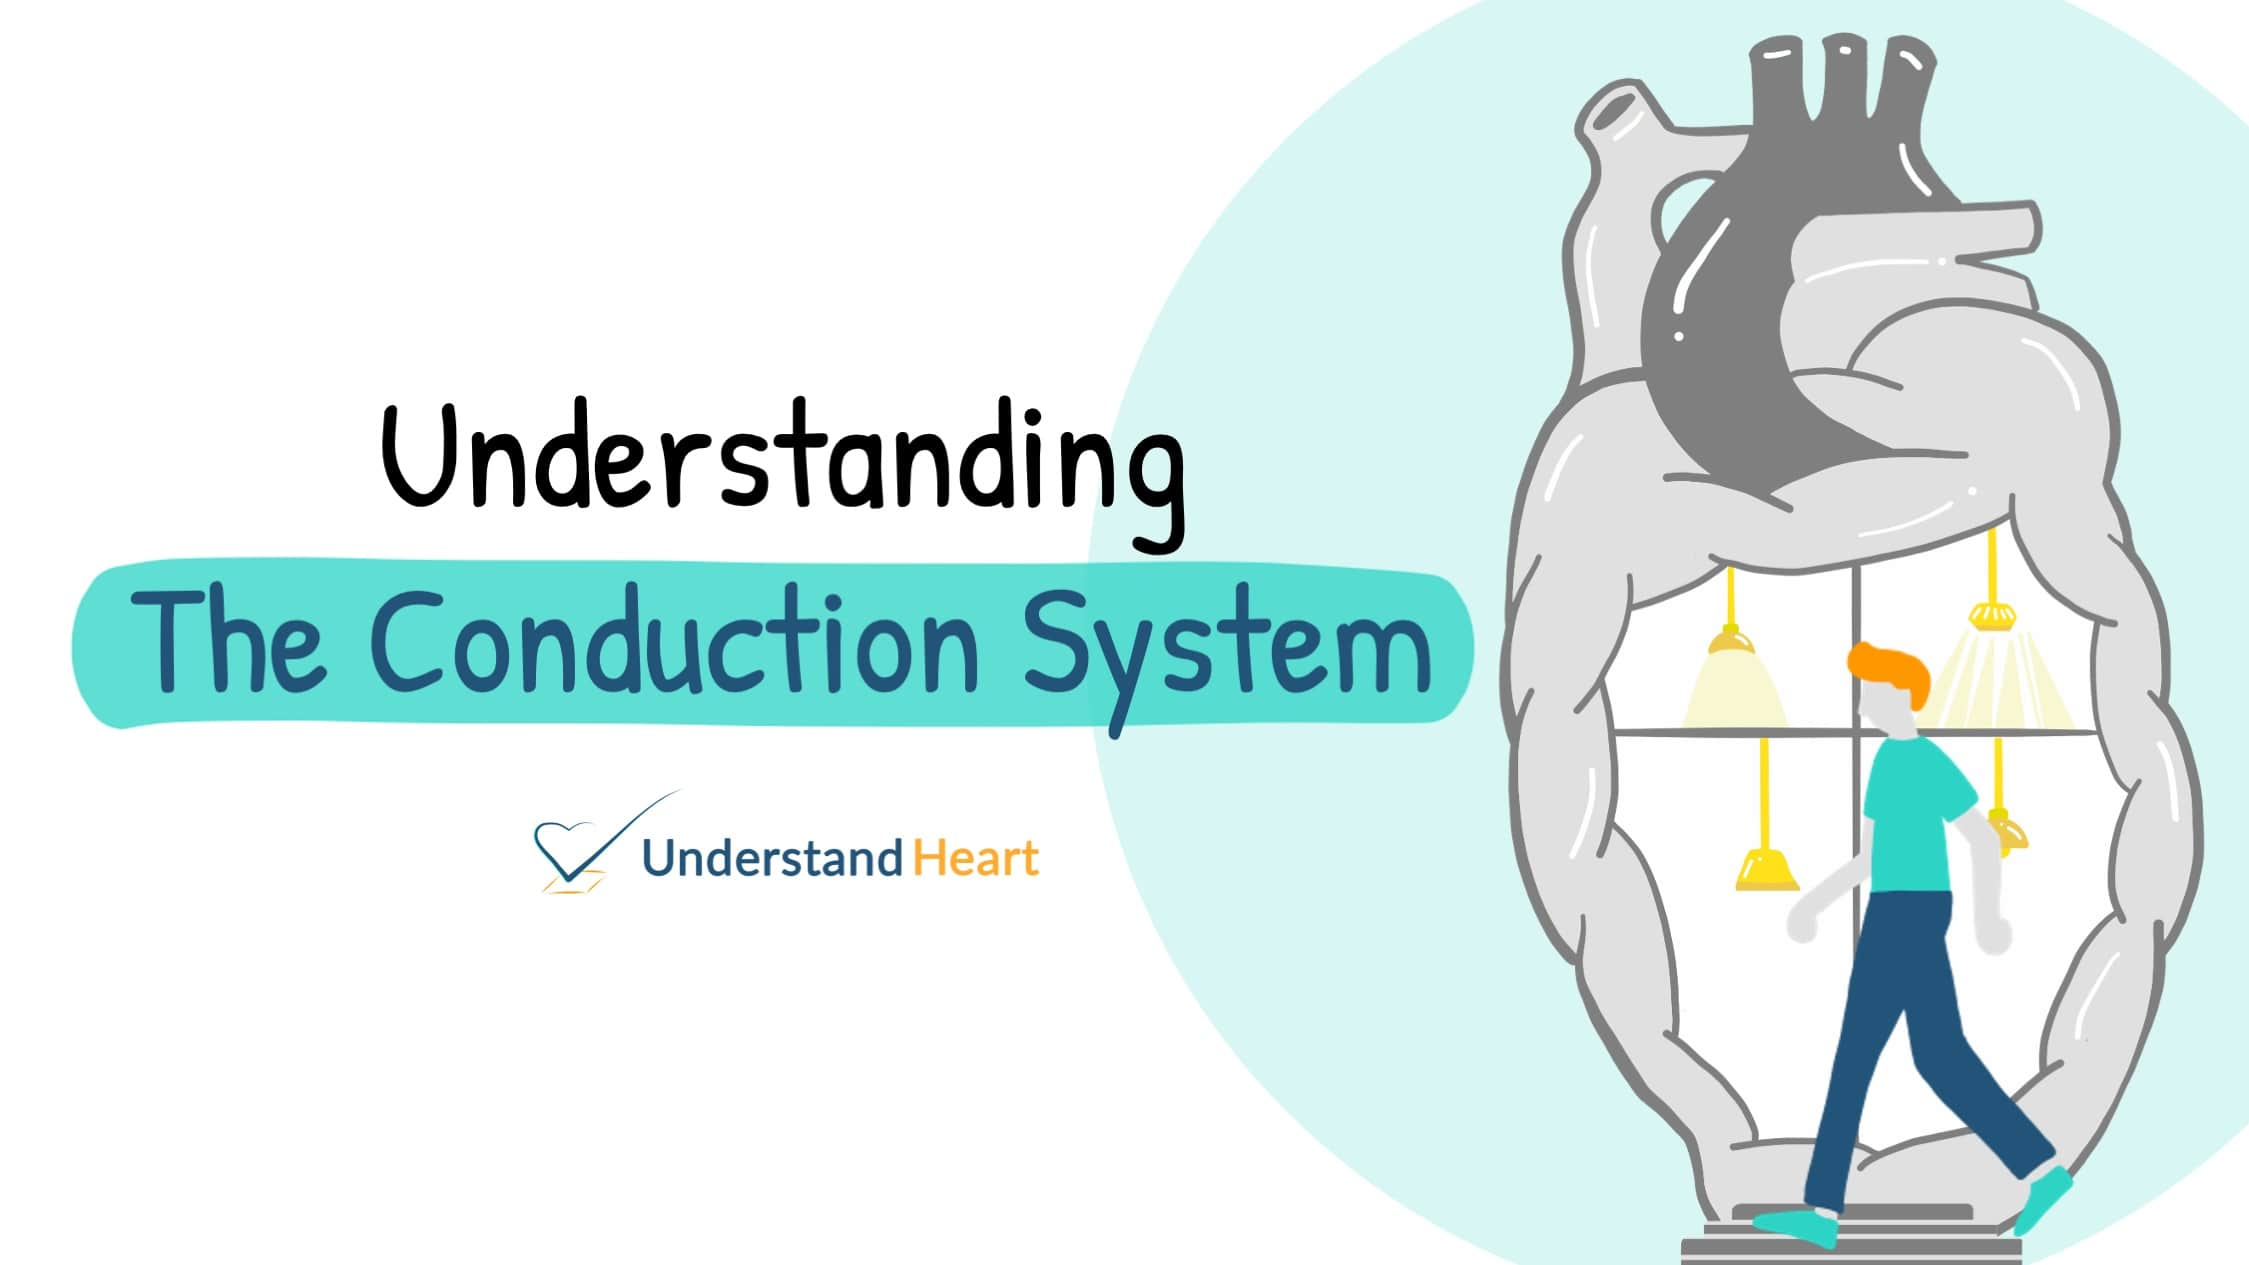 Understanding the conduction system | Using light switches as analogy!